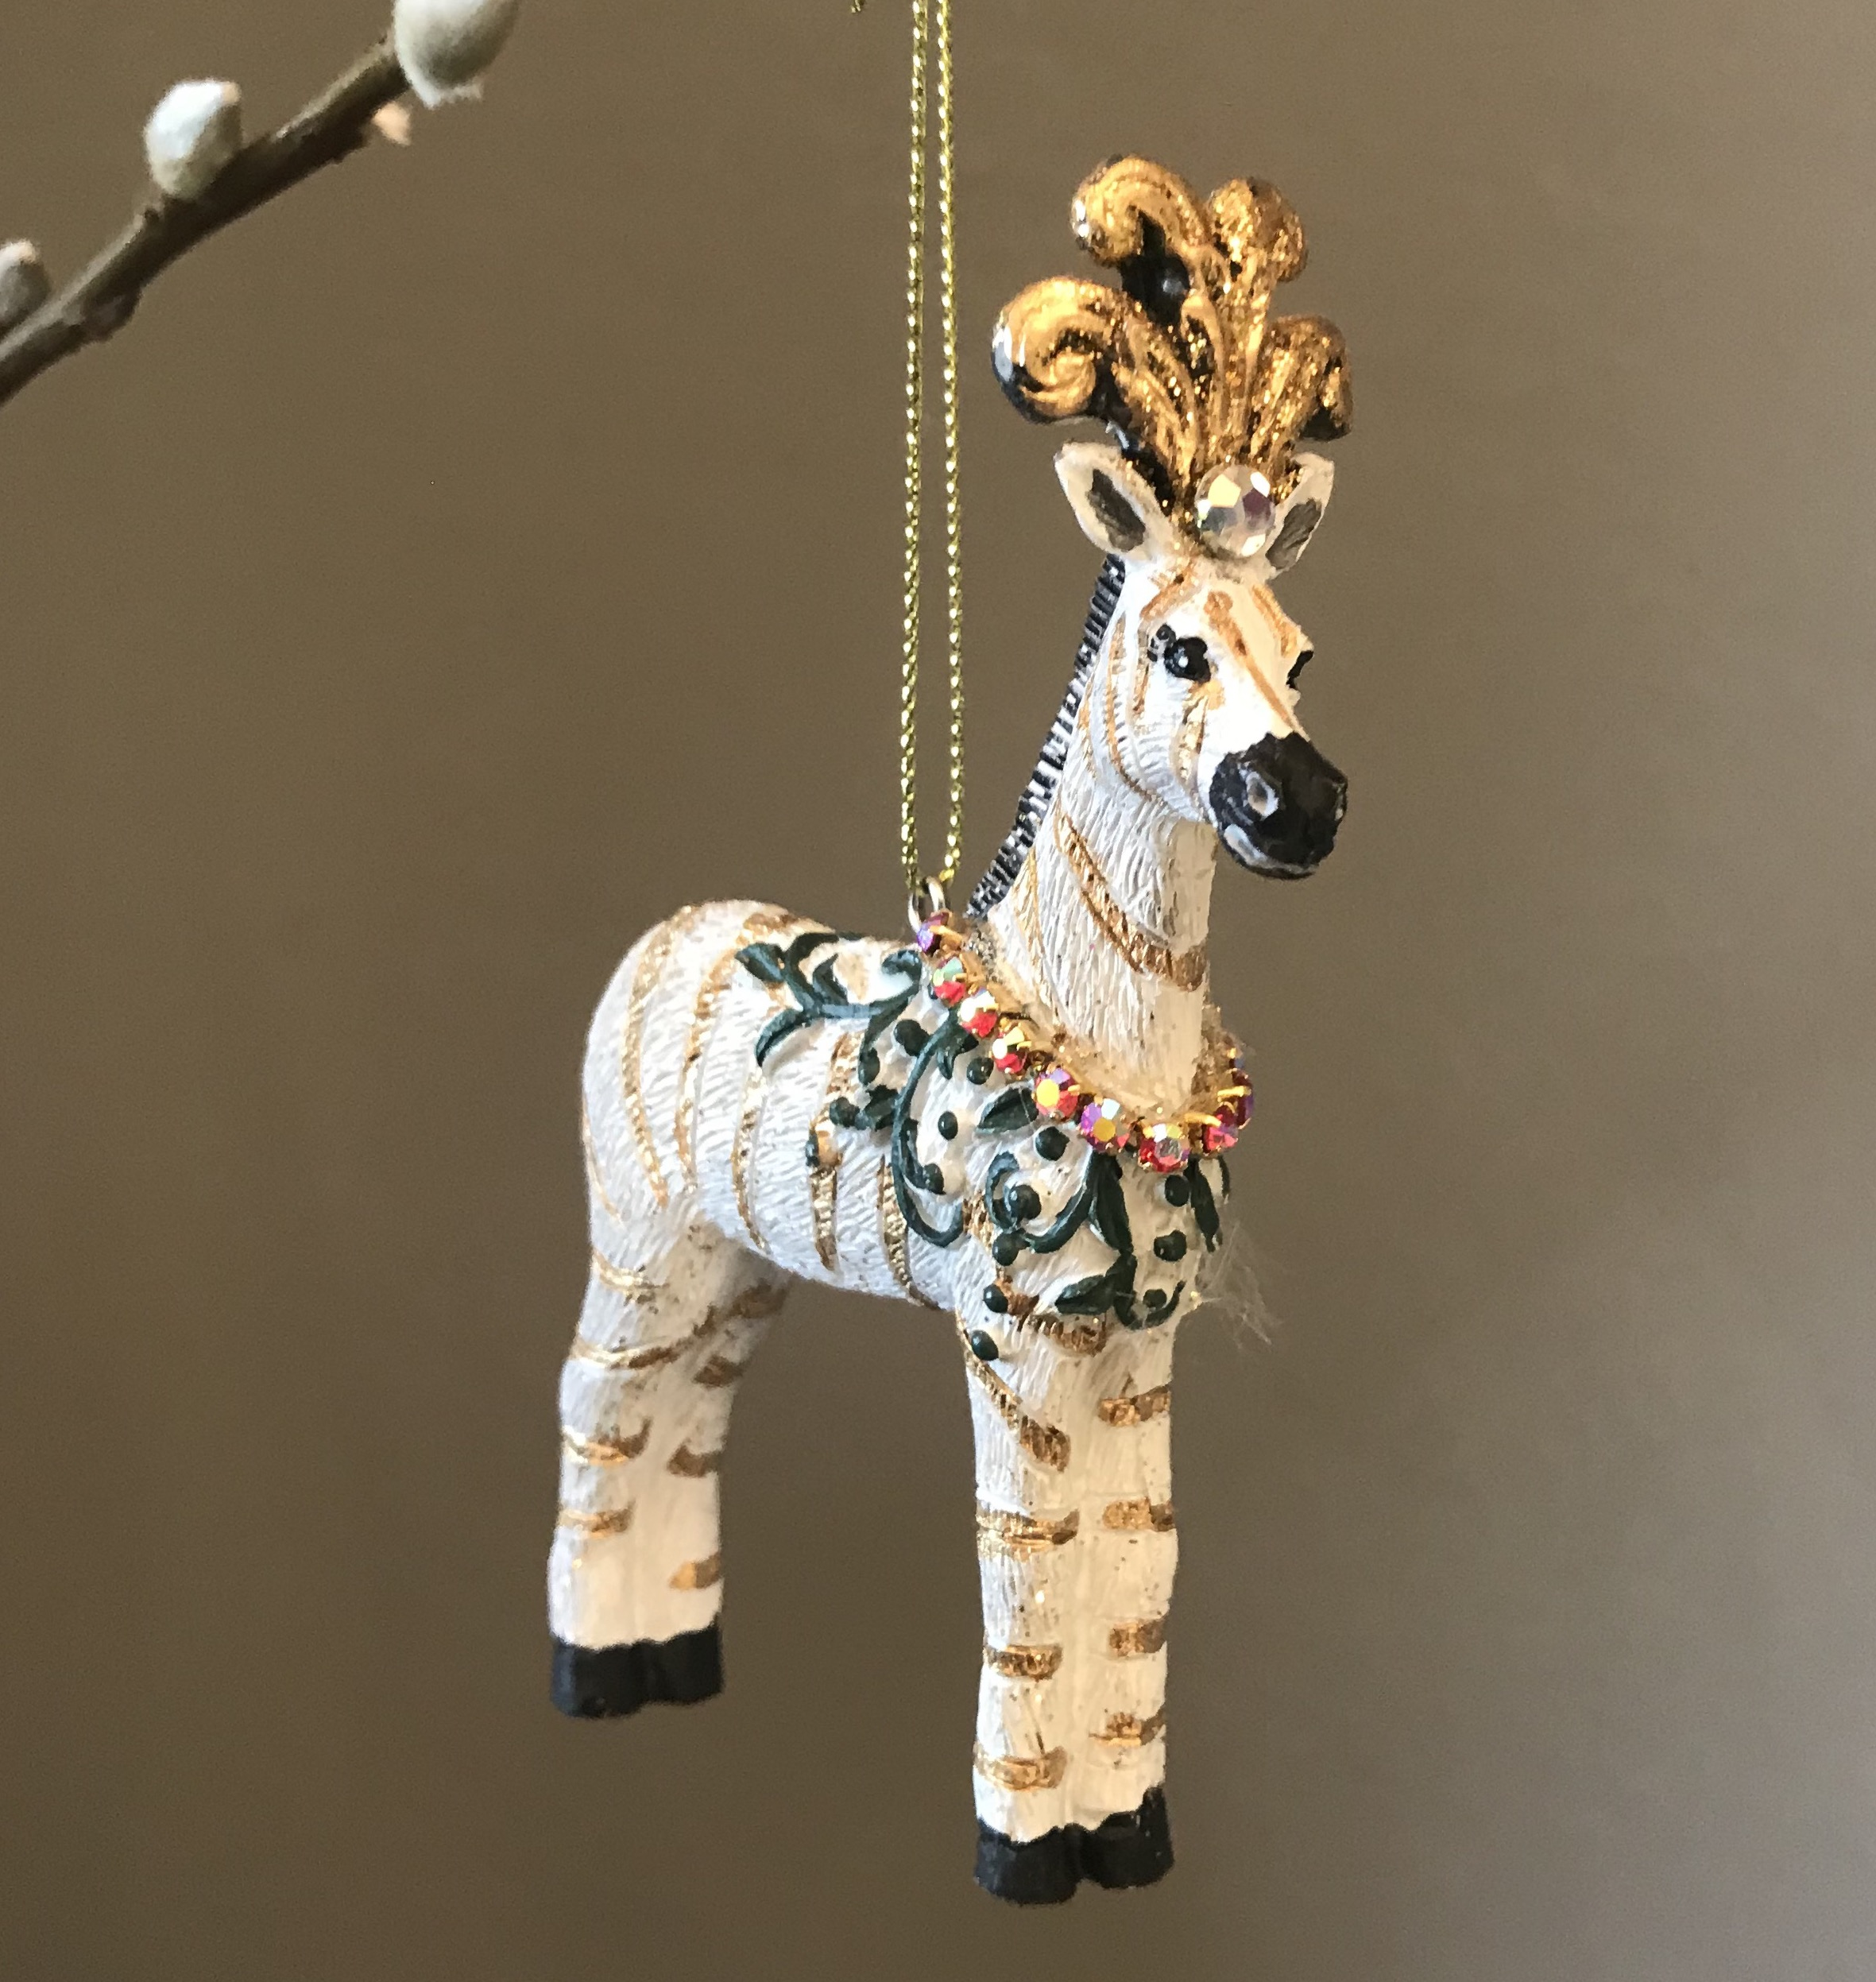 Resin Zebra Tree Decoration - was £7.25